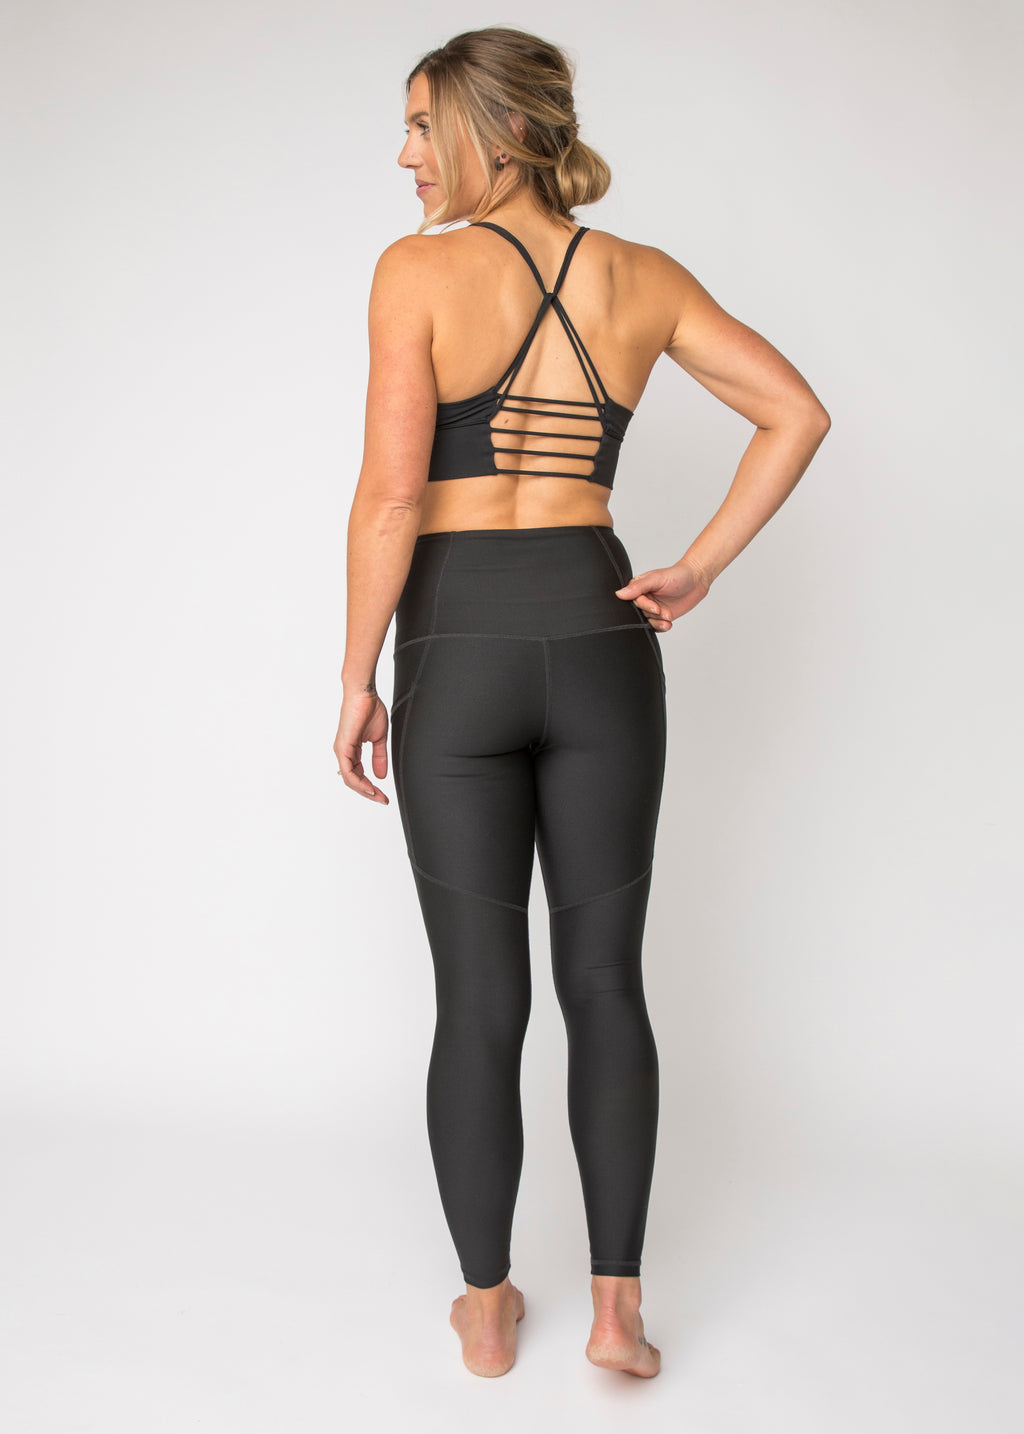 """Pitch Black"" Pack-light Tights"